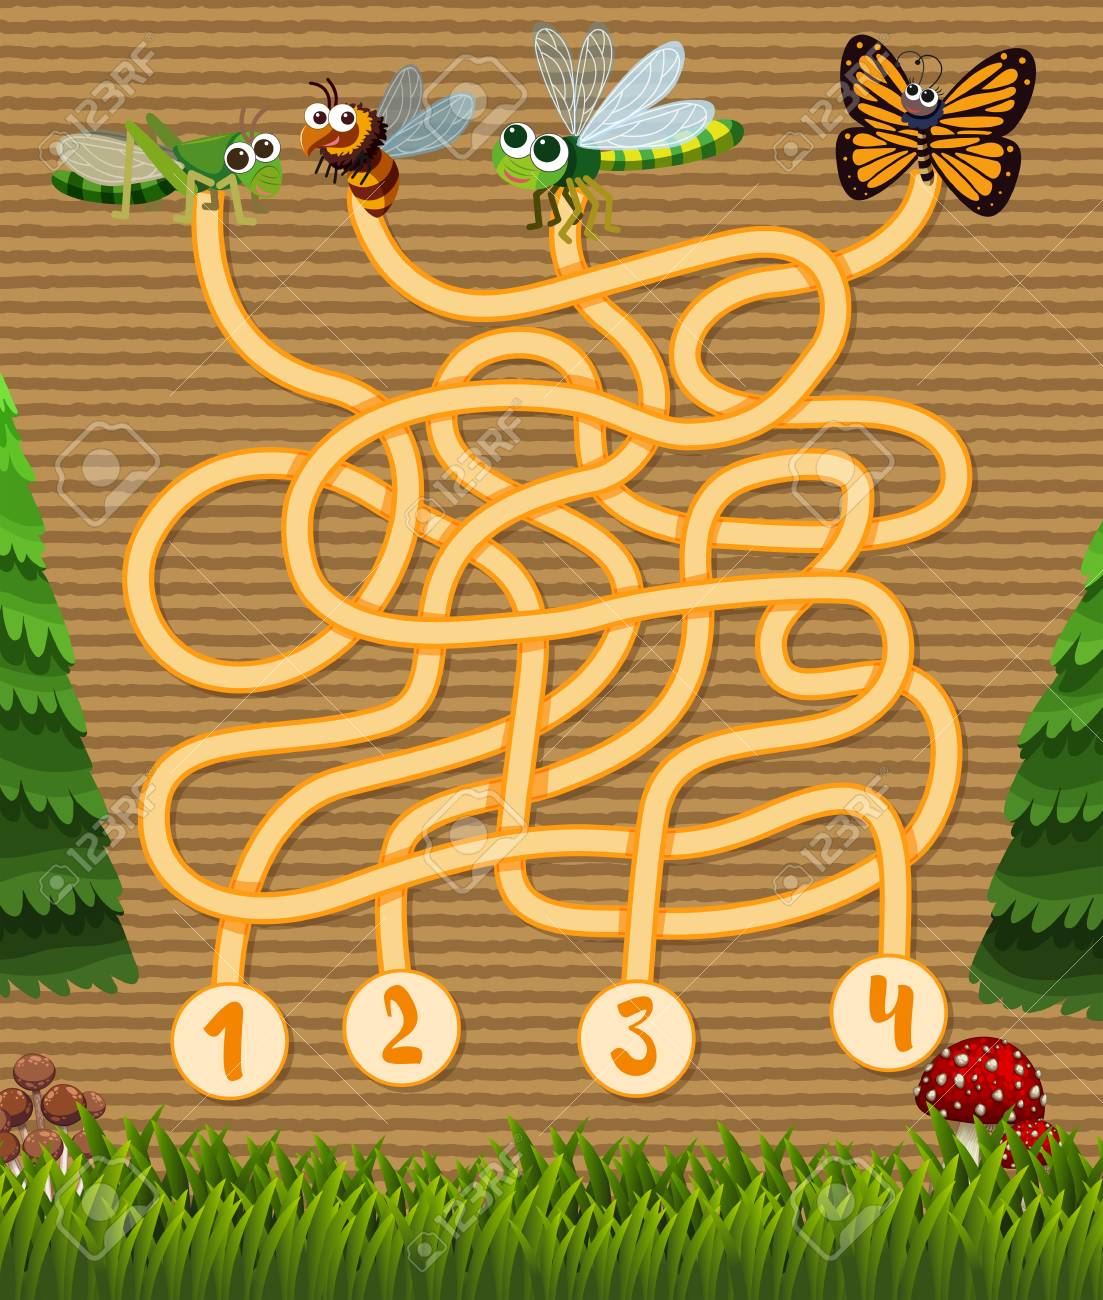 Puzzle Game Template With Insects In Garden Illustration Royalty ...